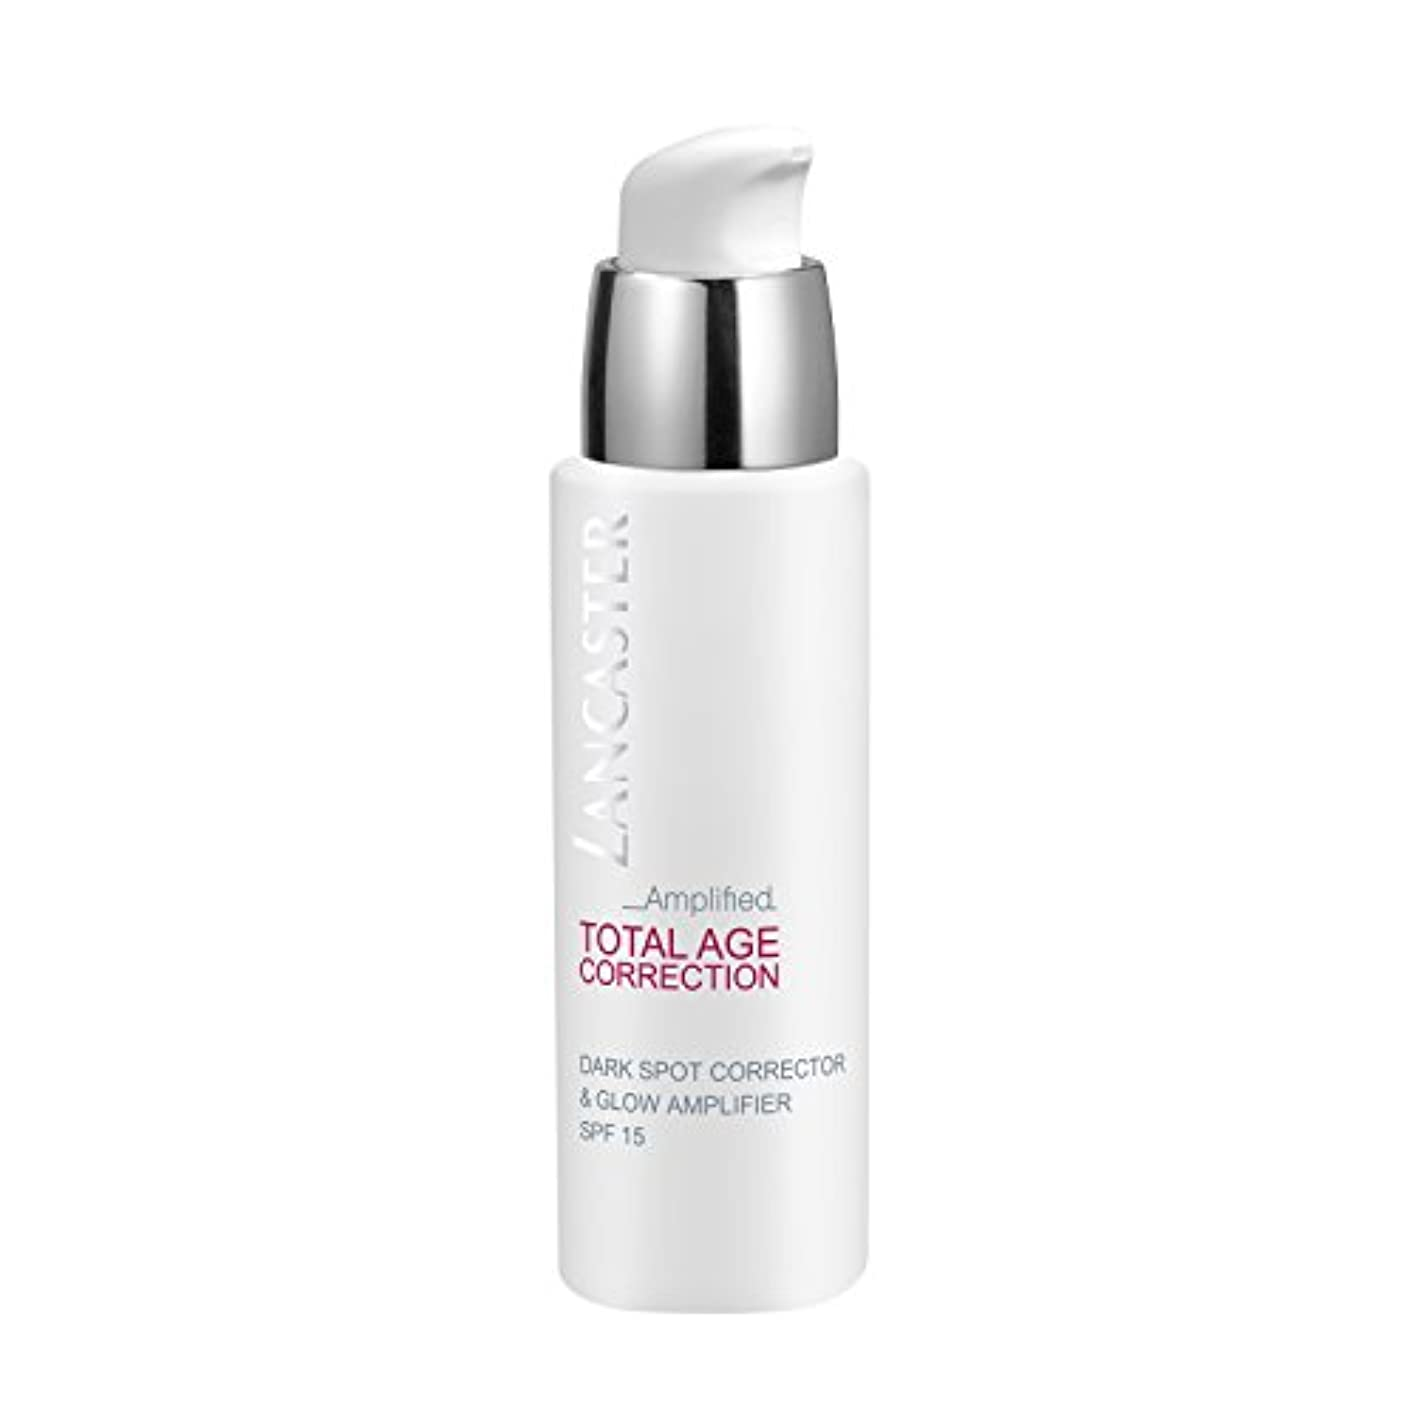 水分設置値ランカスター Total Age Correction Amplified - Dark Spot Corrector & Glow Amplifier SPF15 30ml/1oz並行輸入品